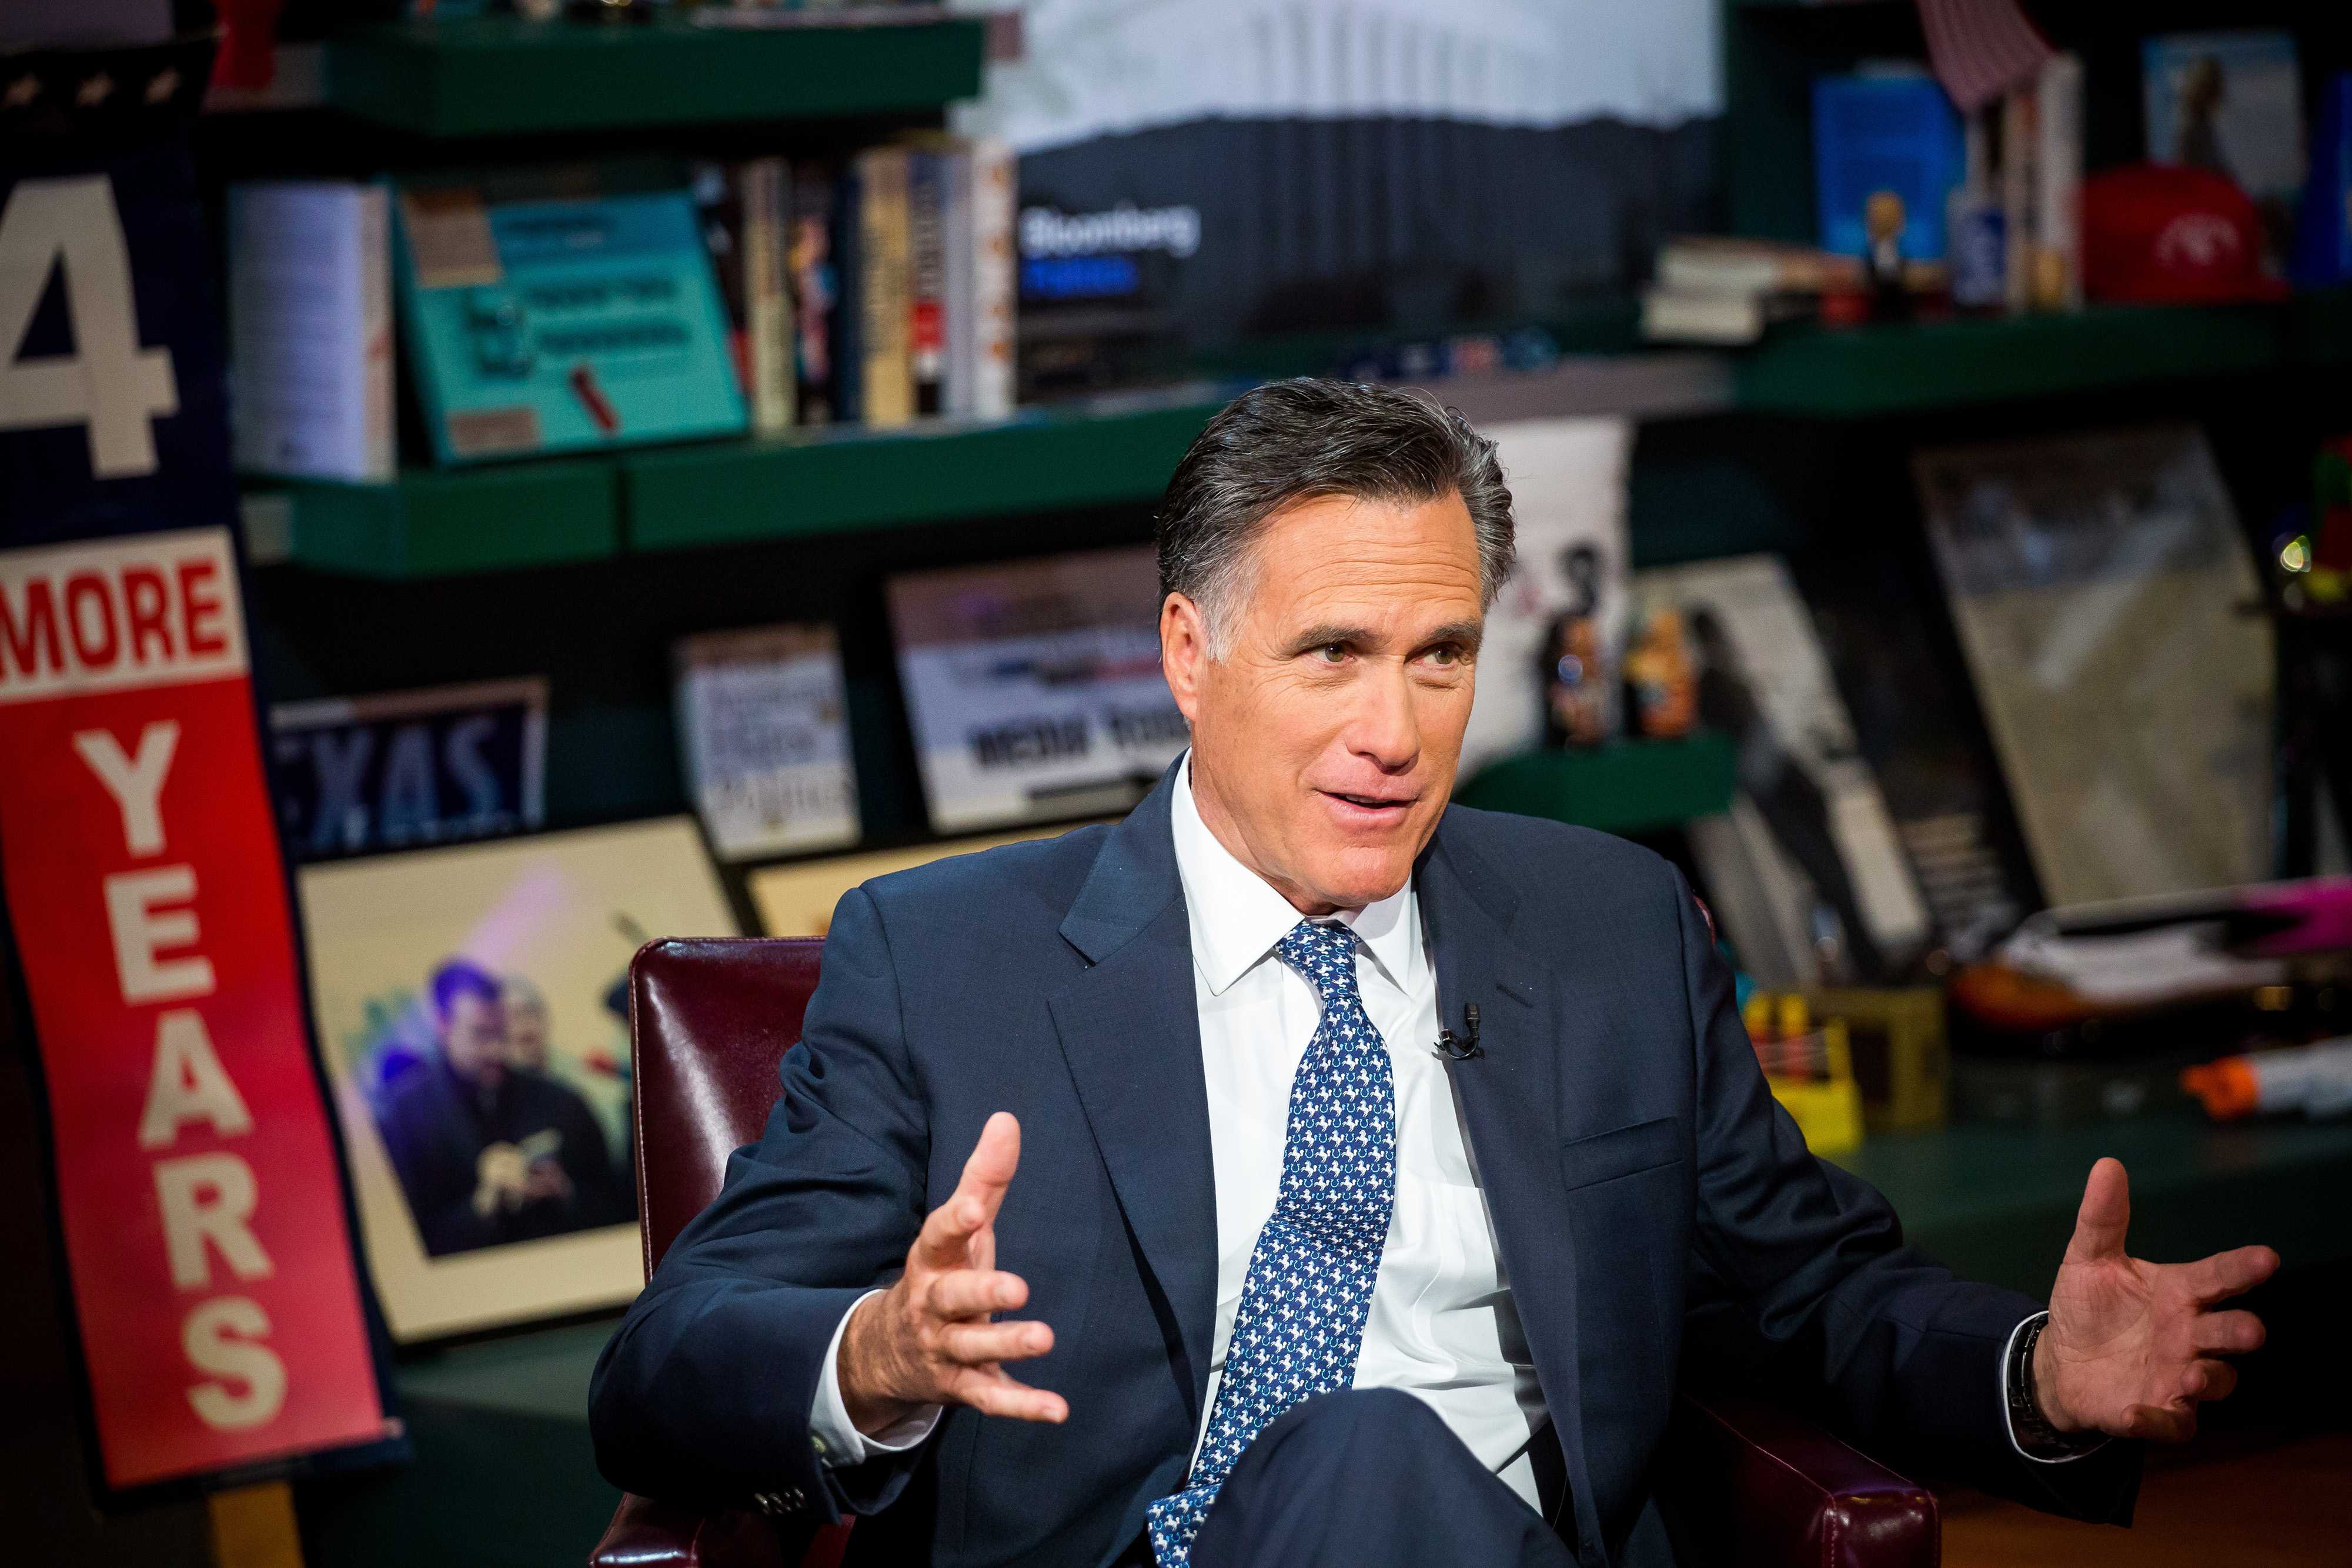 Mitt Romney, former governor of Massachusetts and former 2012 Republican presidential nominee, speaks during a Bloomberg Television interview in New York, on March 4.